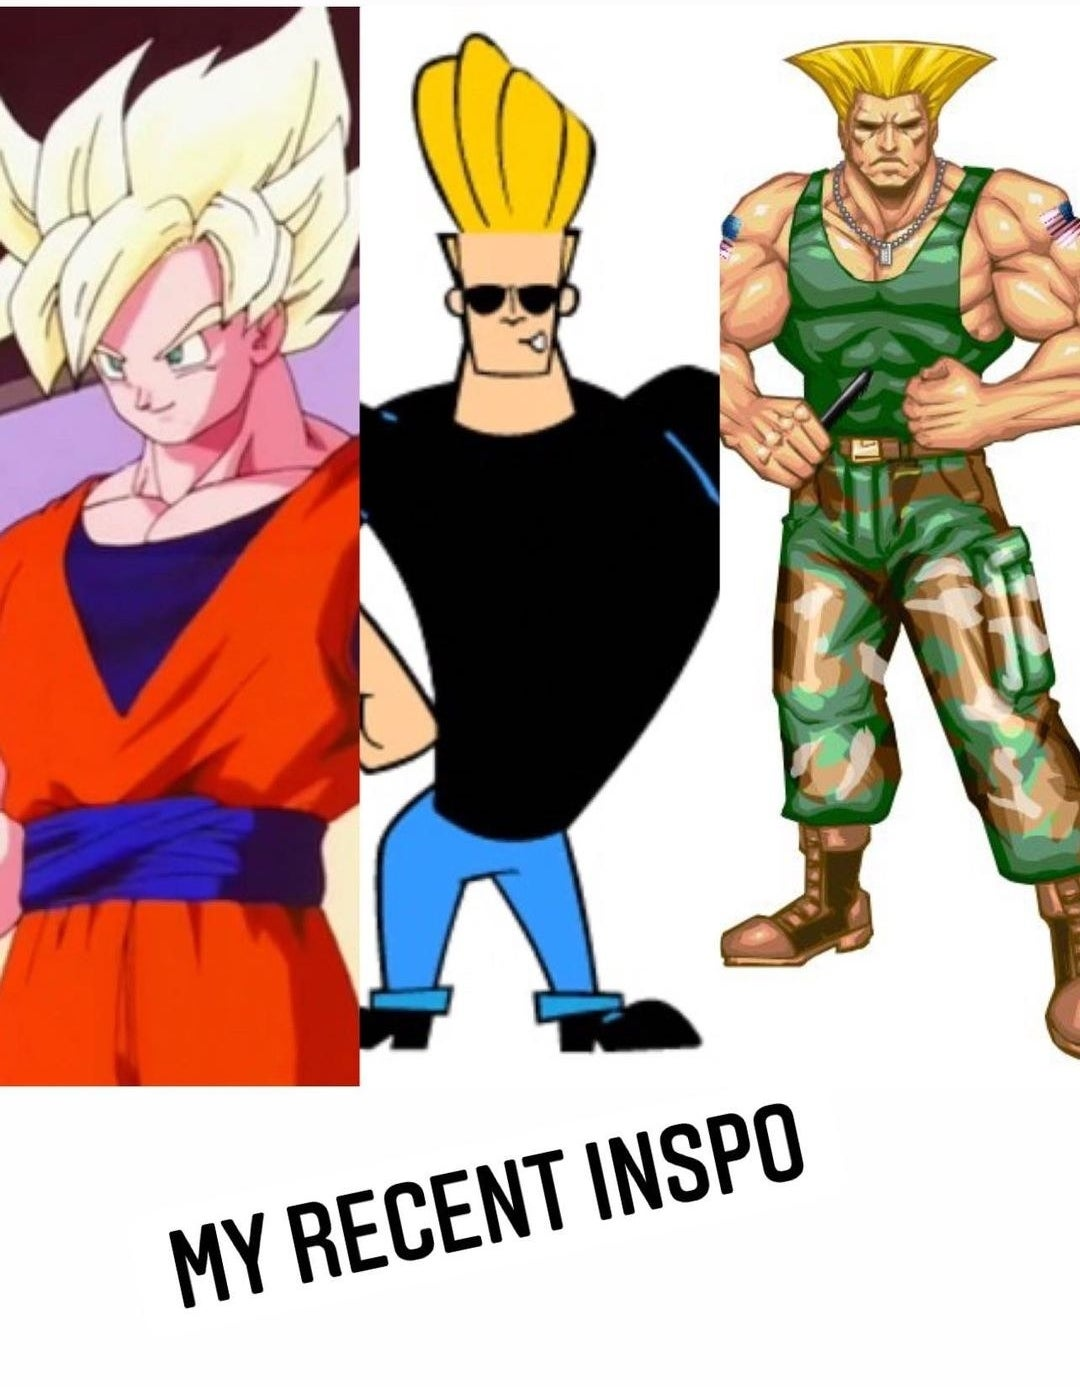 Blonde cartoon characters including Johnny Bravo